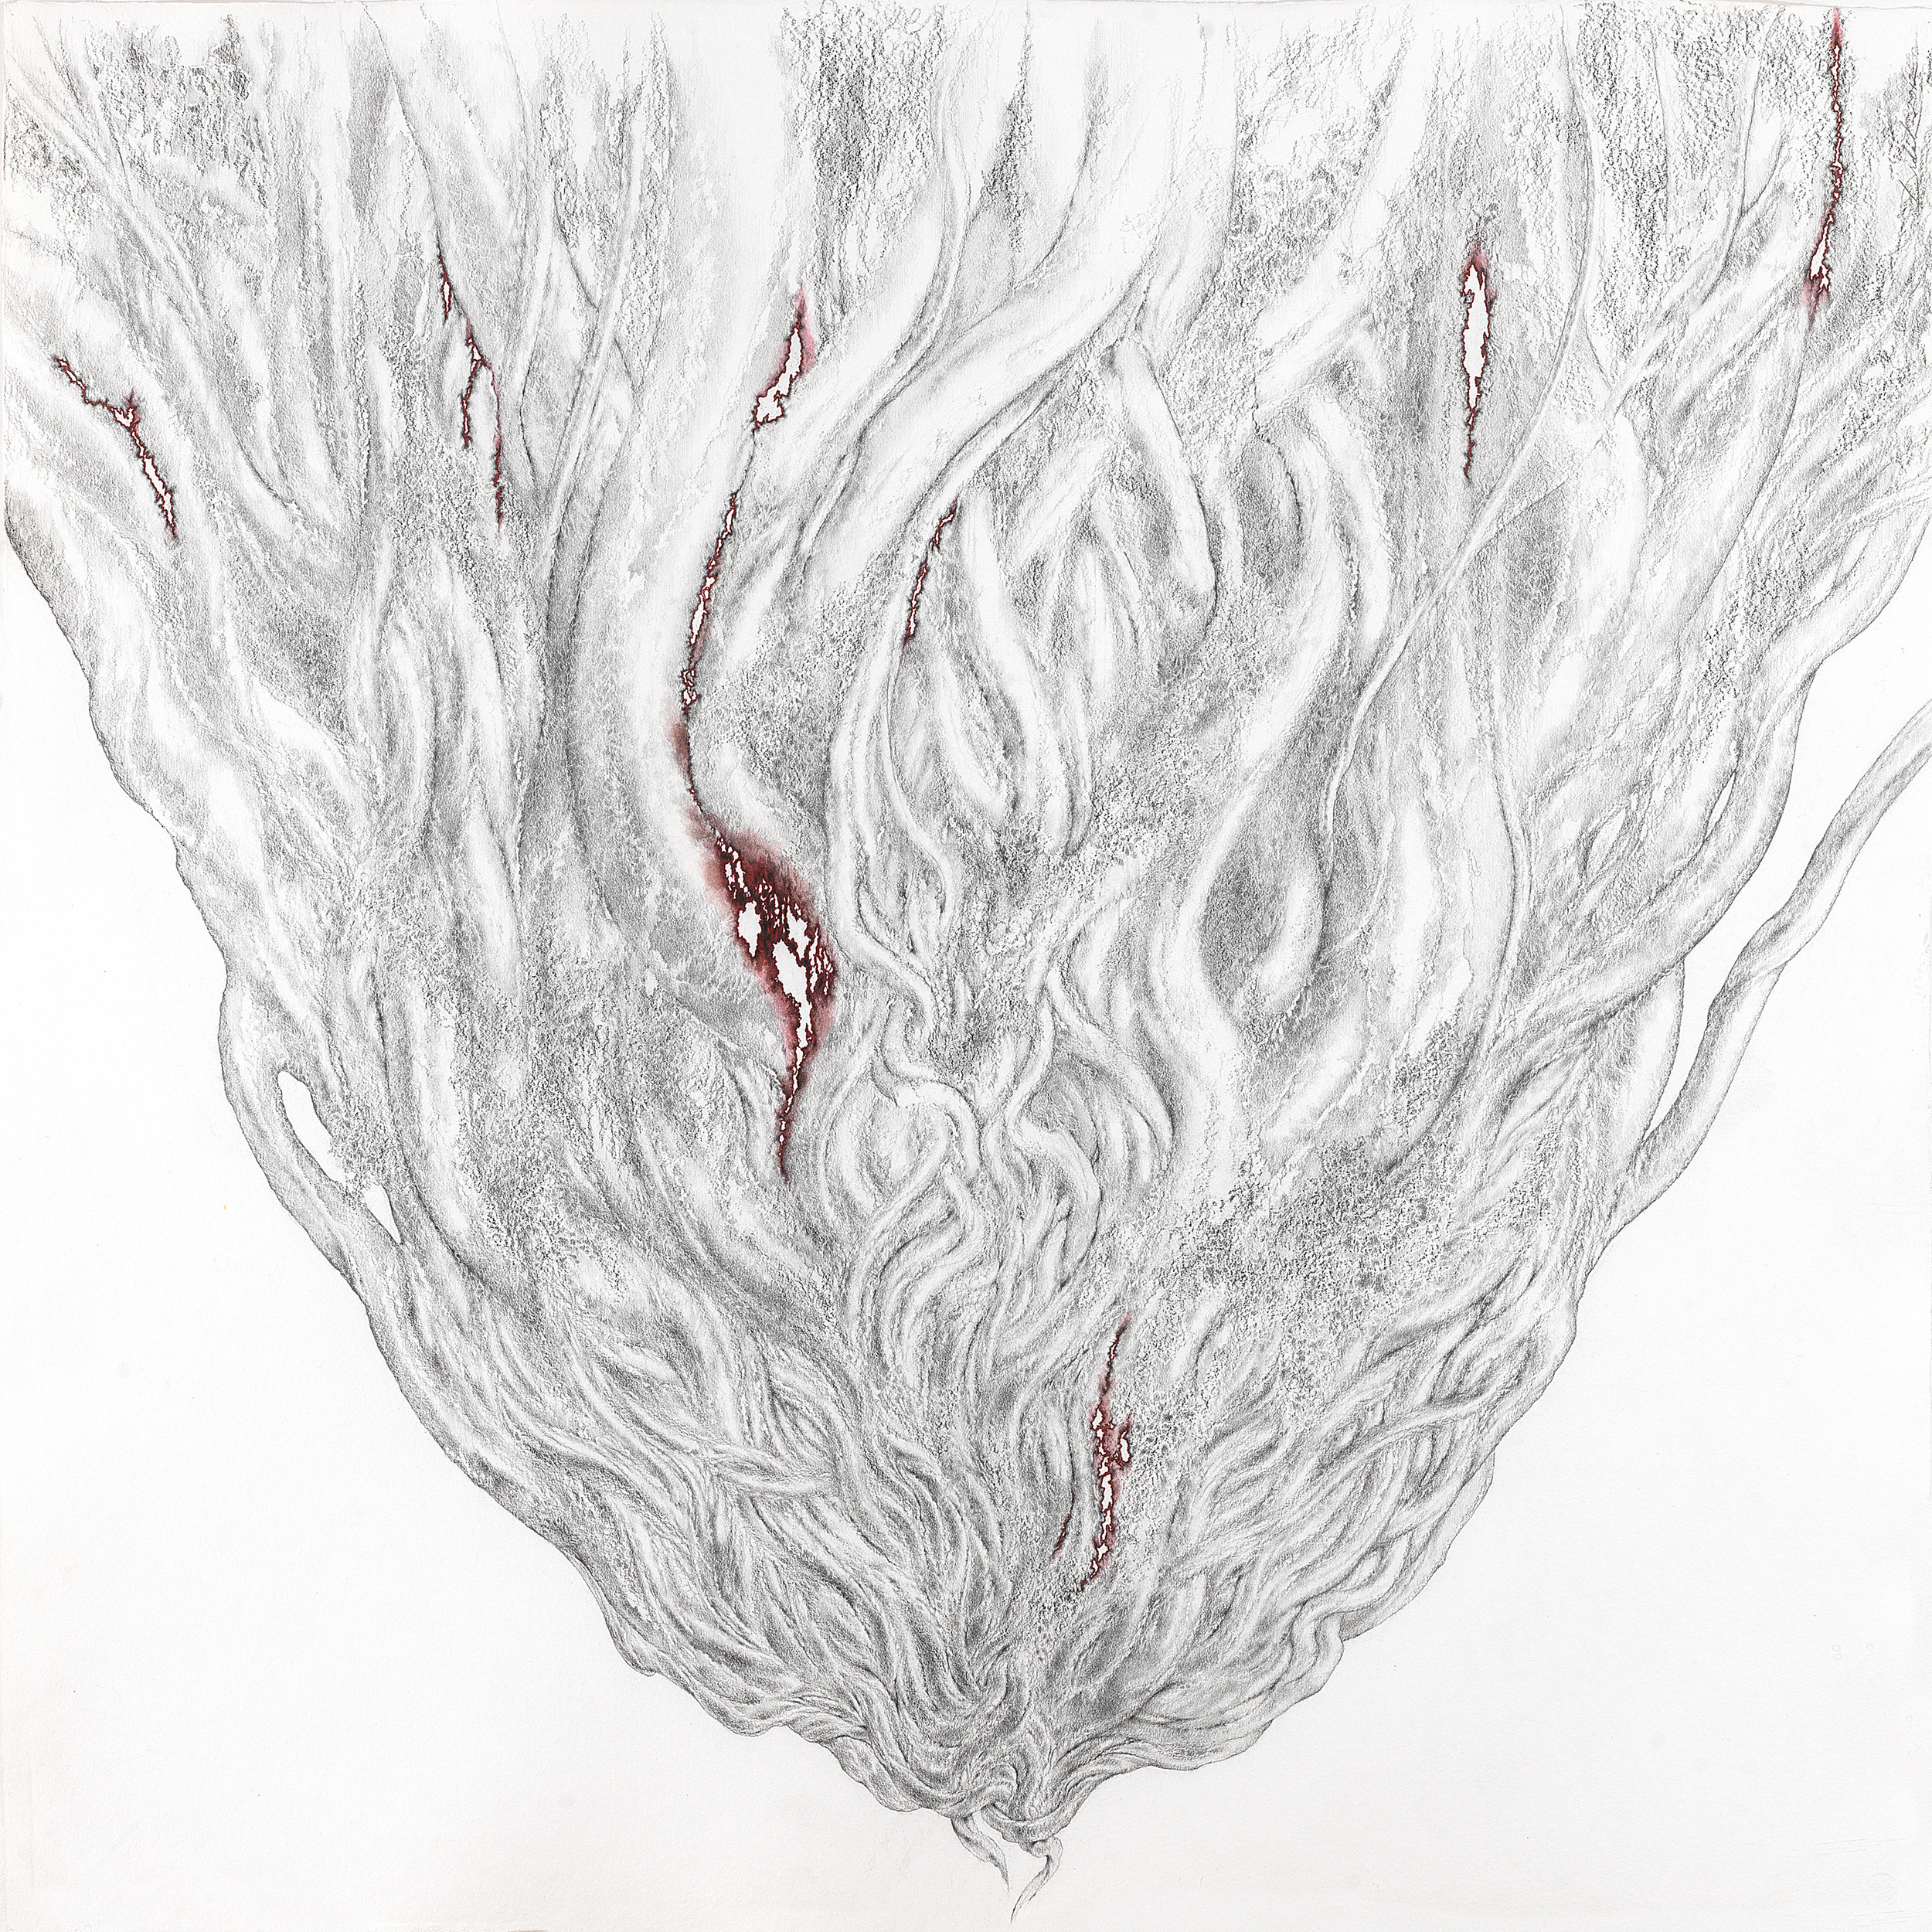 BLEEDING BANYAN 2 , 2013, graphite pencil and red marker with acrylic on Twinrocker handmade paper, 34 x 34 inches